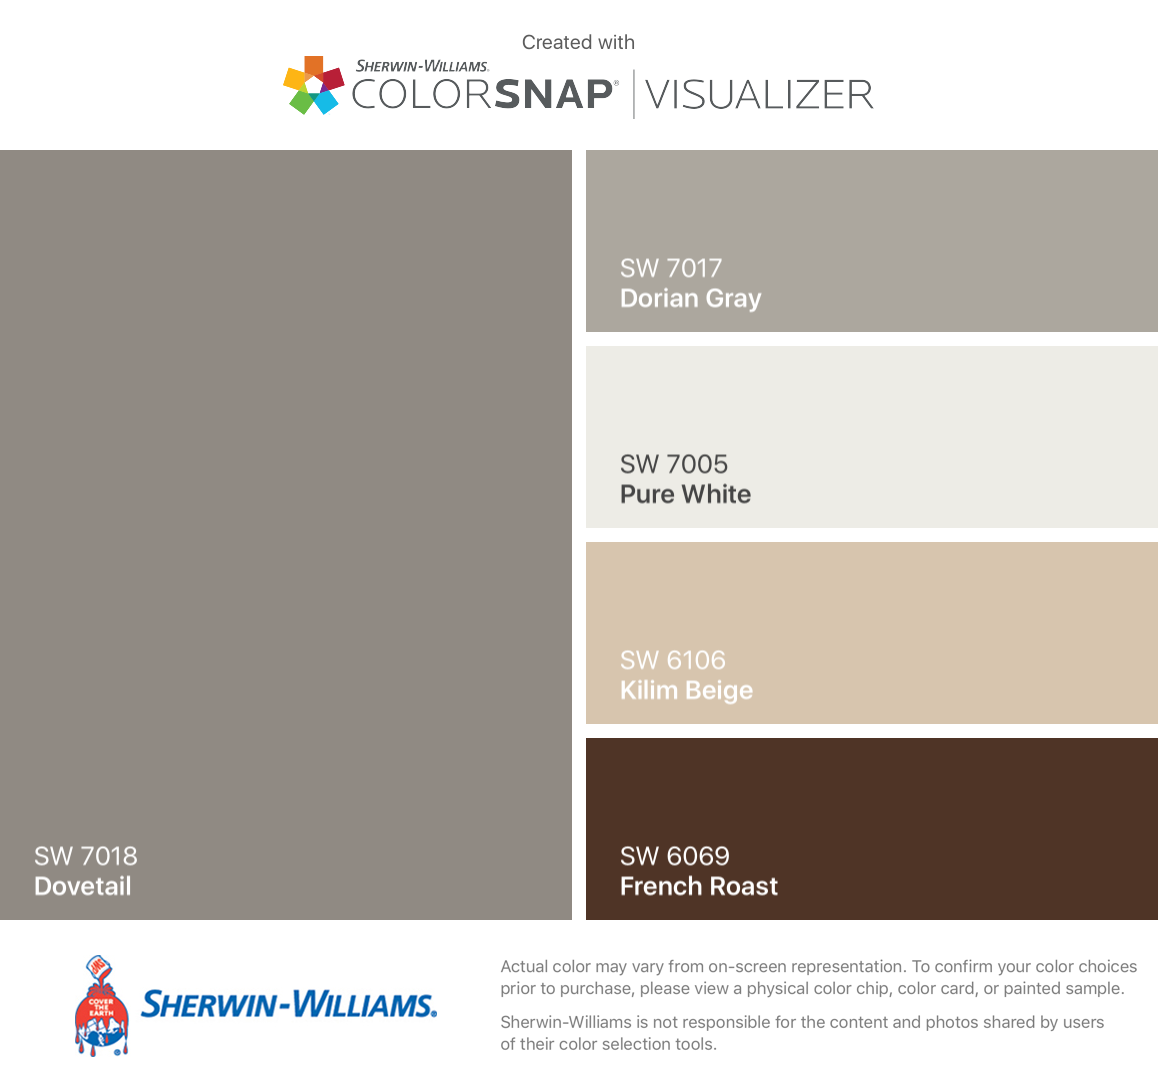 7018 dovetail sherwin williams - I Found These Colors With Colorsnap Visualizer For Iphone By Sherwin Williams Dovetail